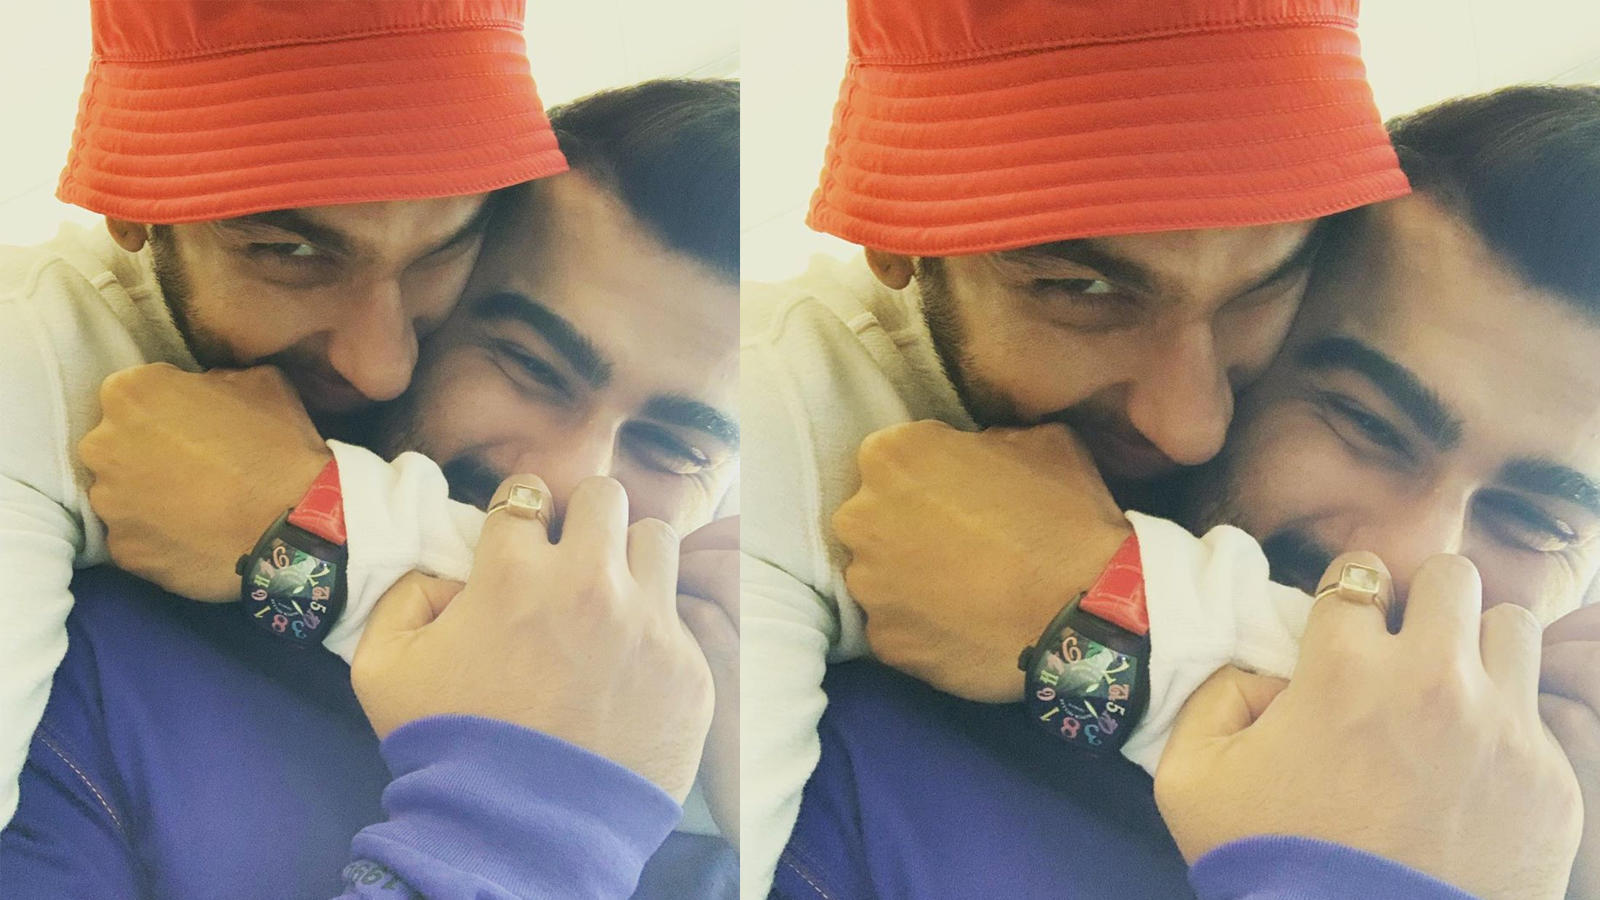 ranveer-singh-shares-the-happiest-selfie-with-bff-arjun-kapoor